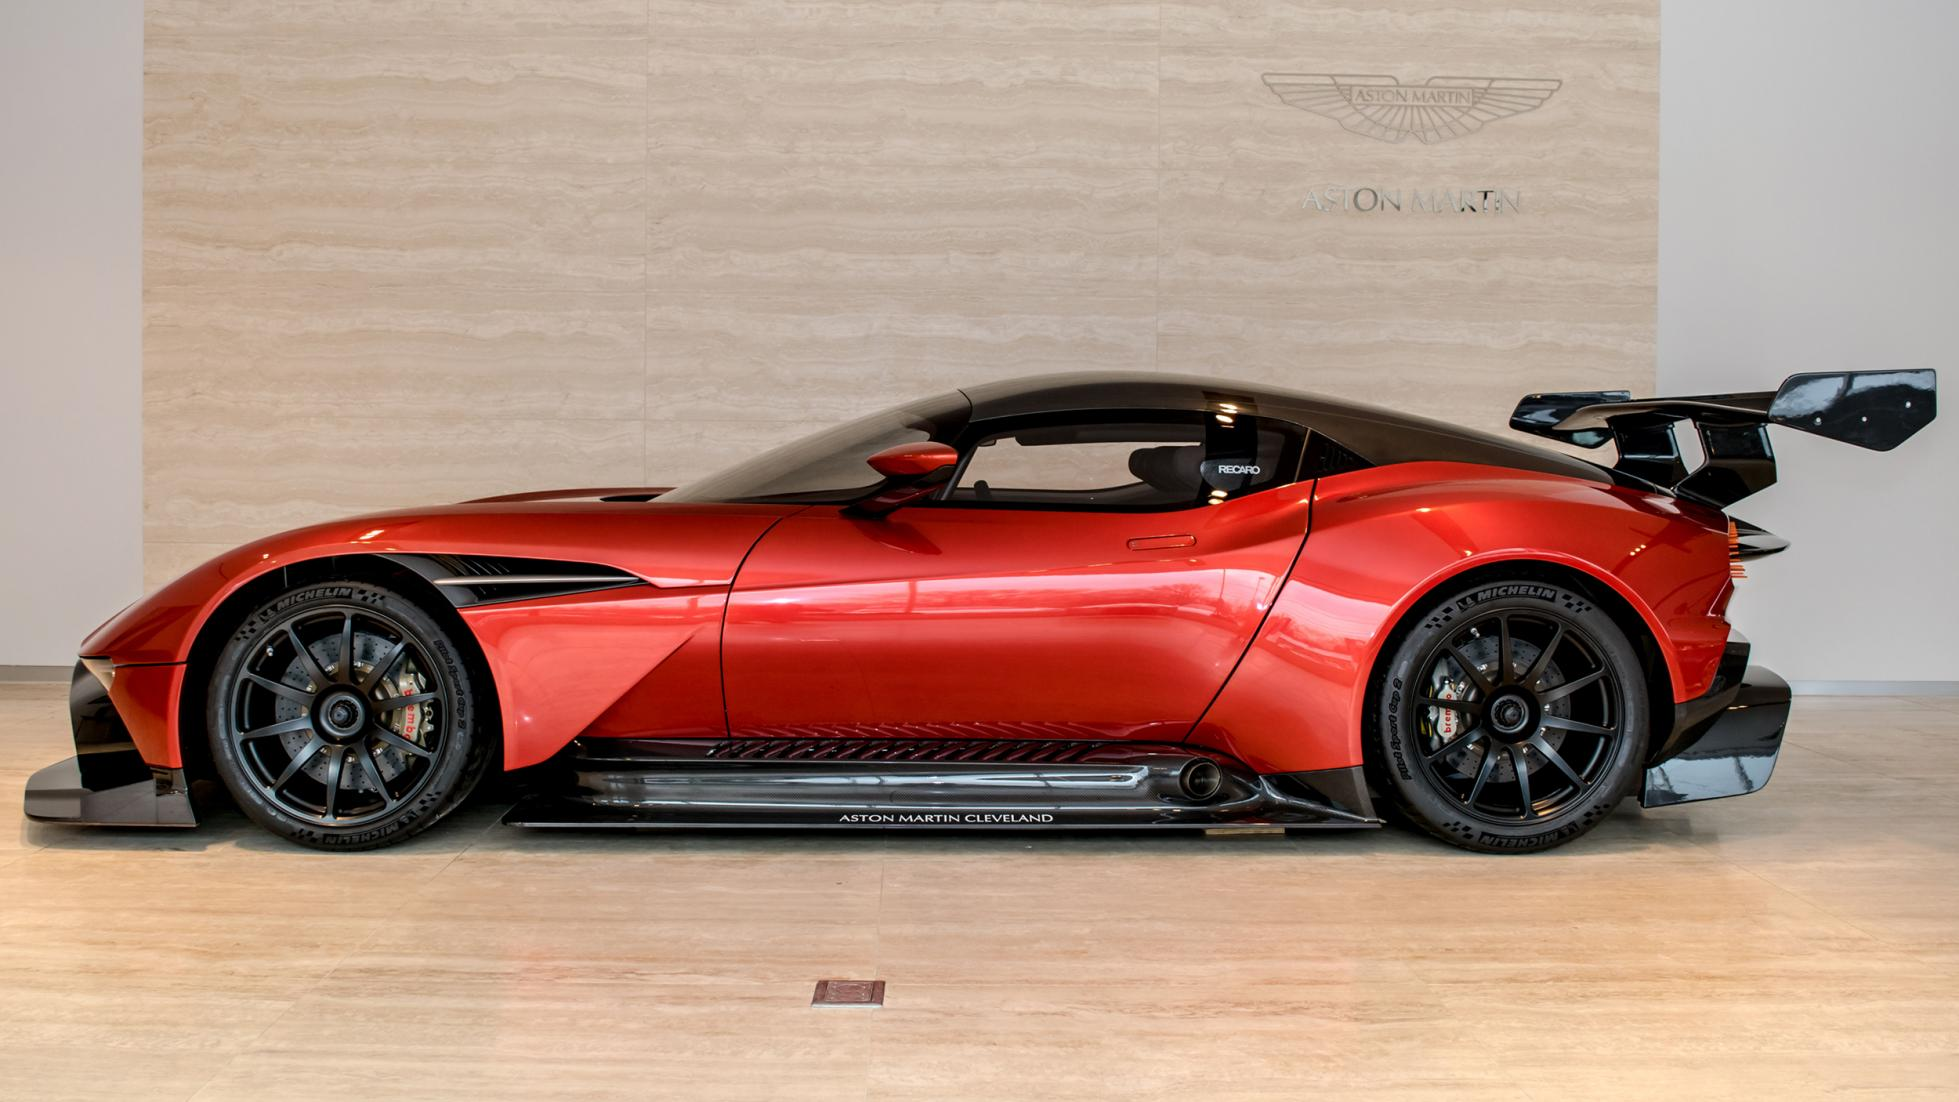 Top Gear On Twitter Holy Moly There S An Aston Martin Vulcan For Sale And Why Don T We Have 2 4million Https T Co 5tet3b4ni0 Https T Co Evstkbetqe